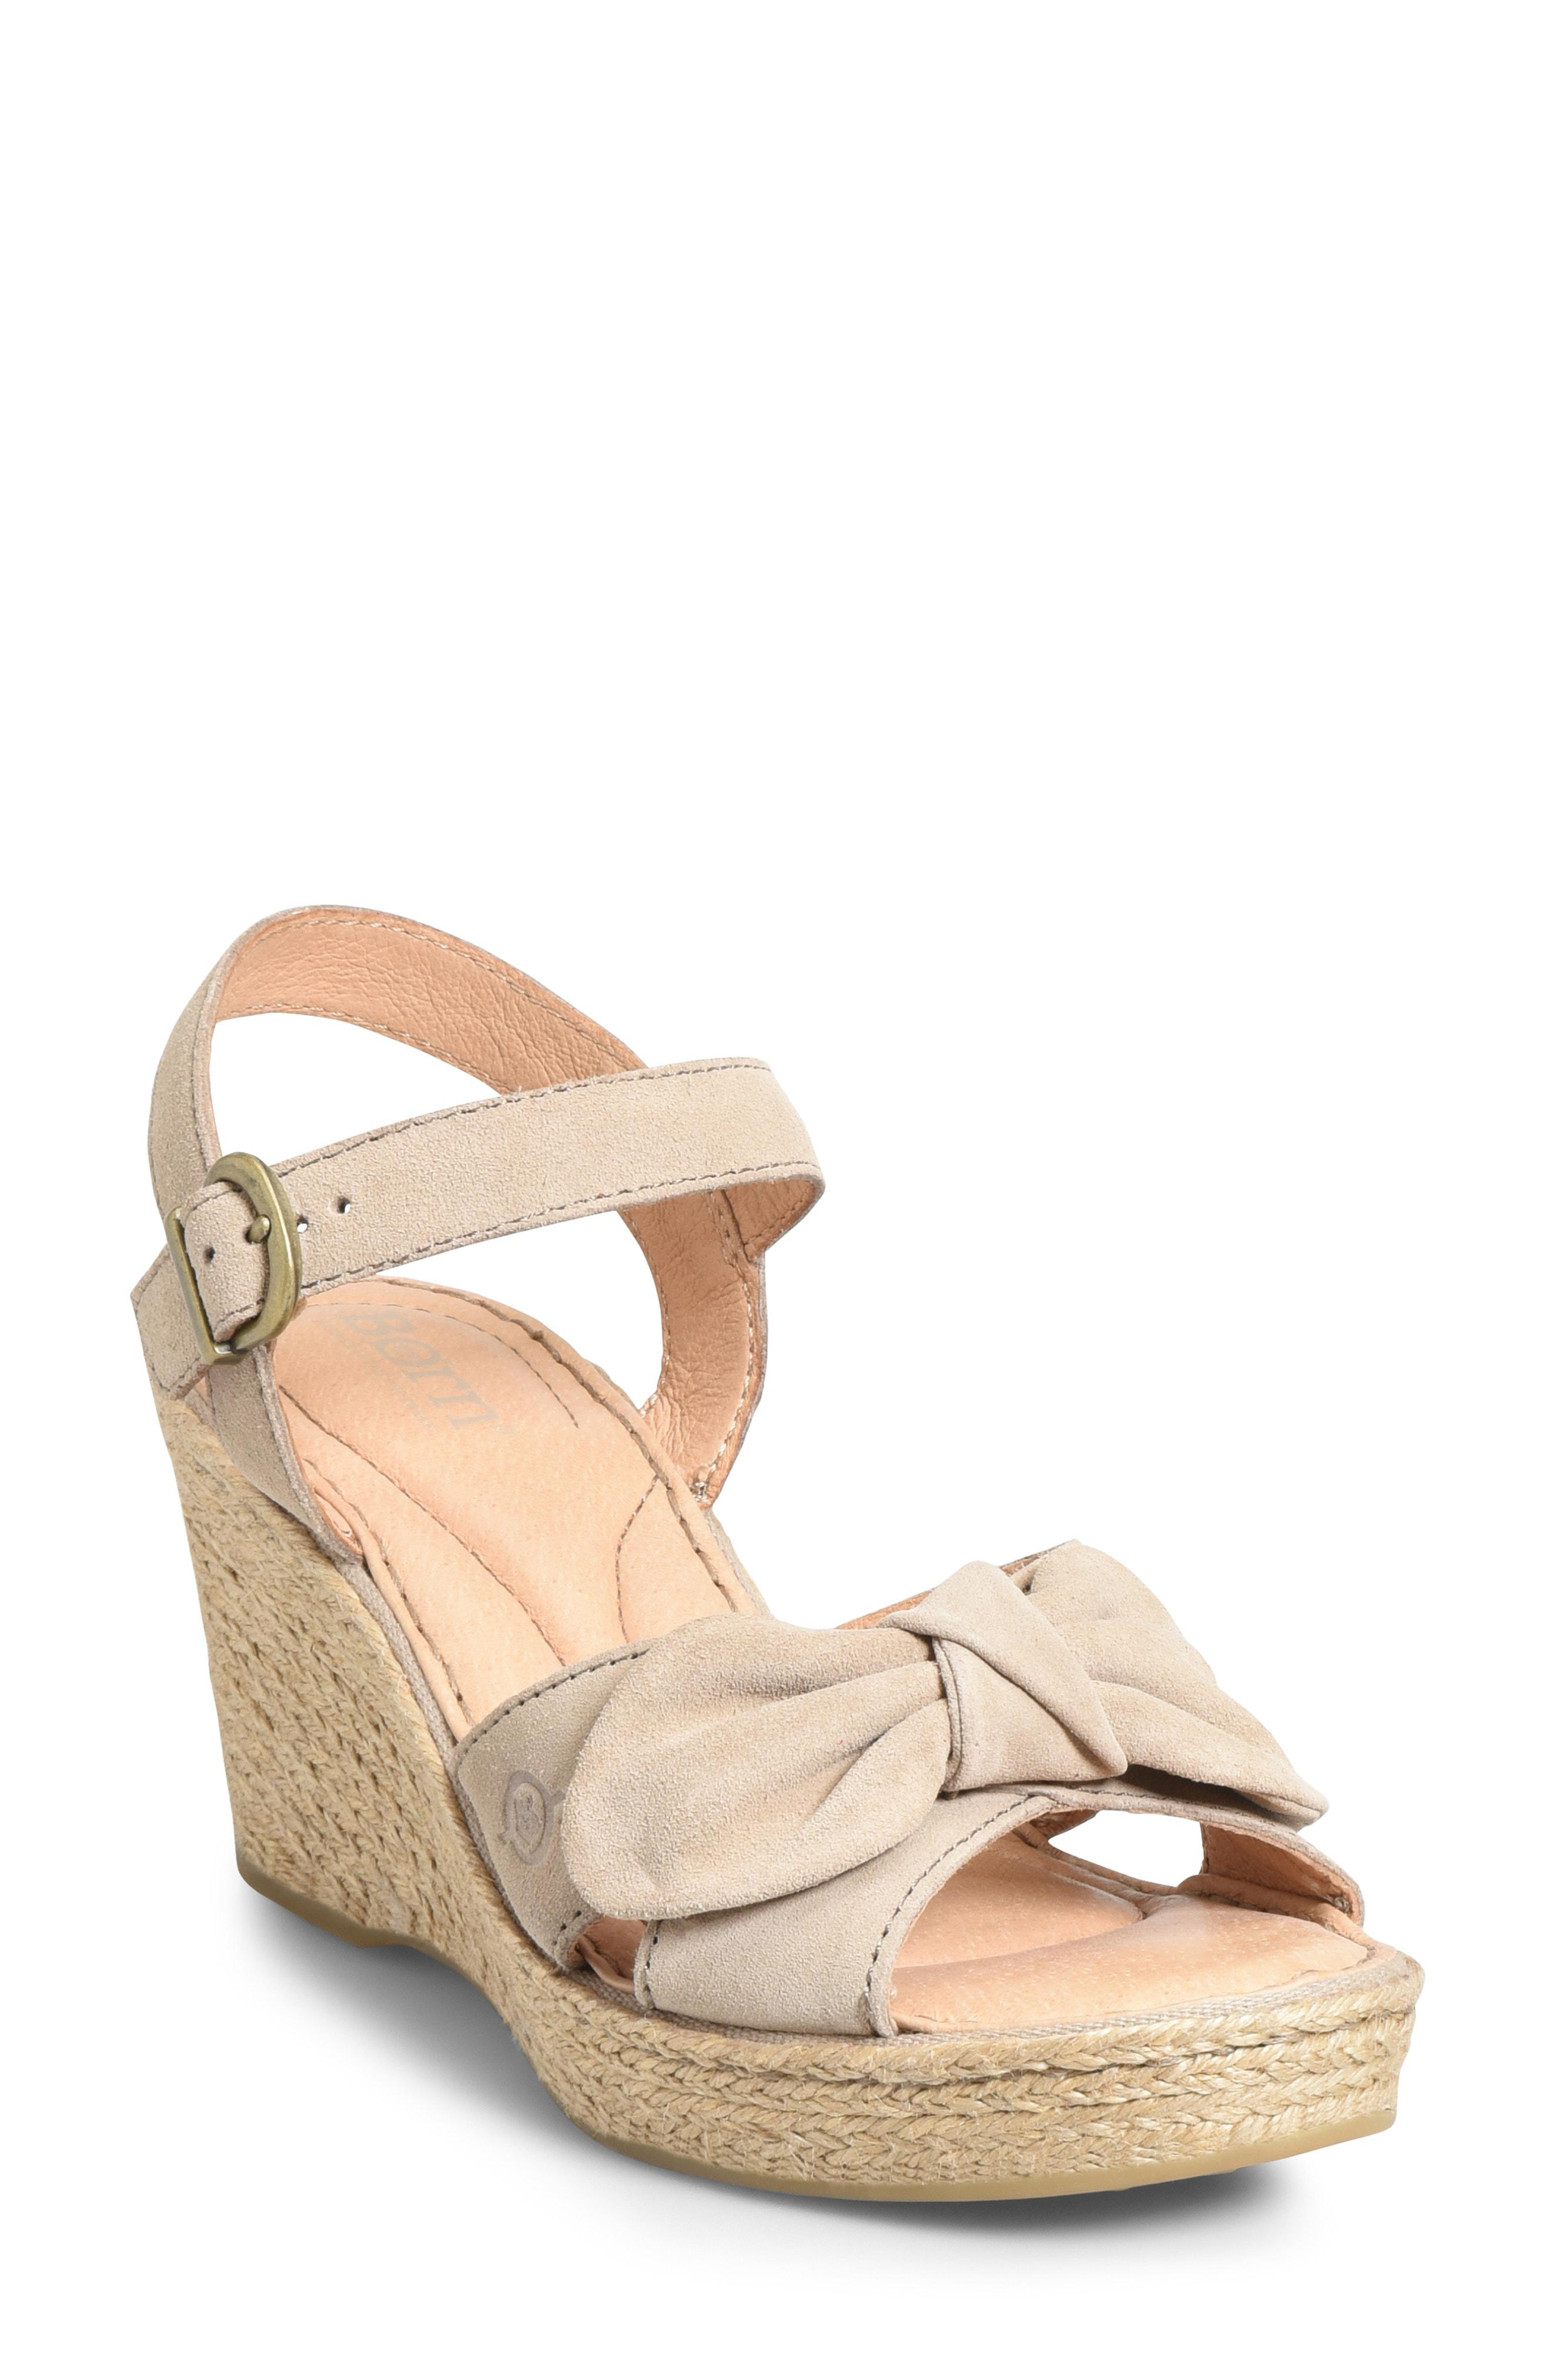 a3ed4280ee38 Born. Women s B rn Monticello Knotted Wedge Sandal